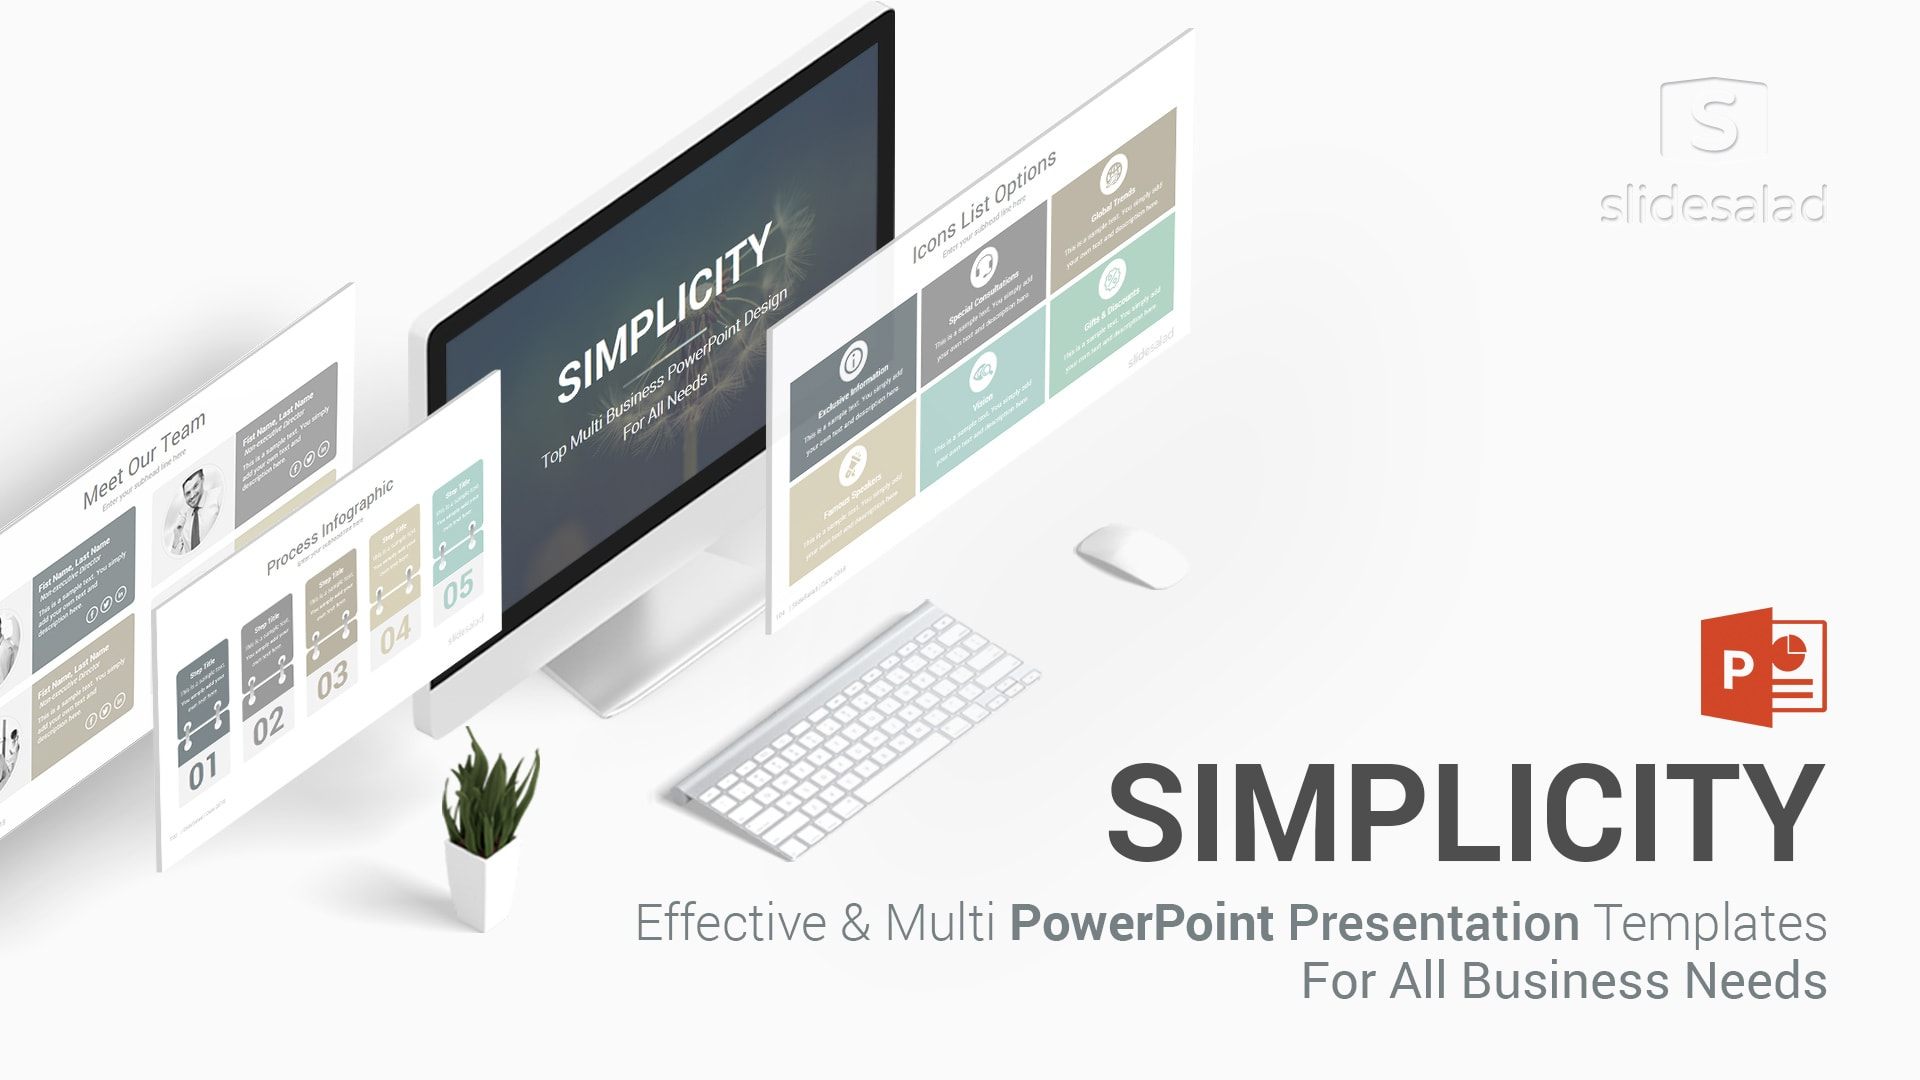 Simplicity Professional Business PowerPoint Templates – Most Demanding PPT Template for Clean & Elegant Presentations